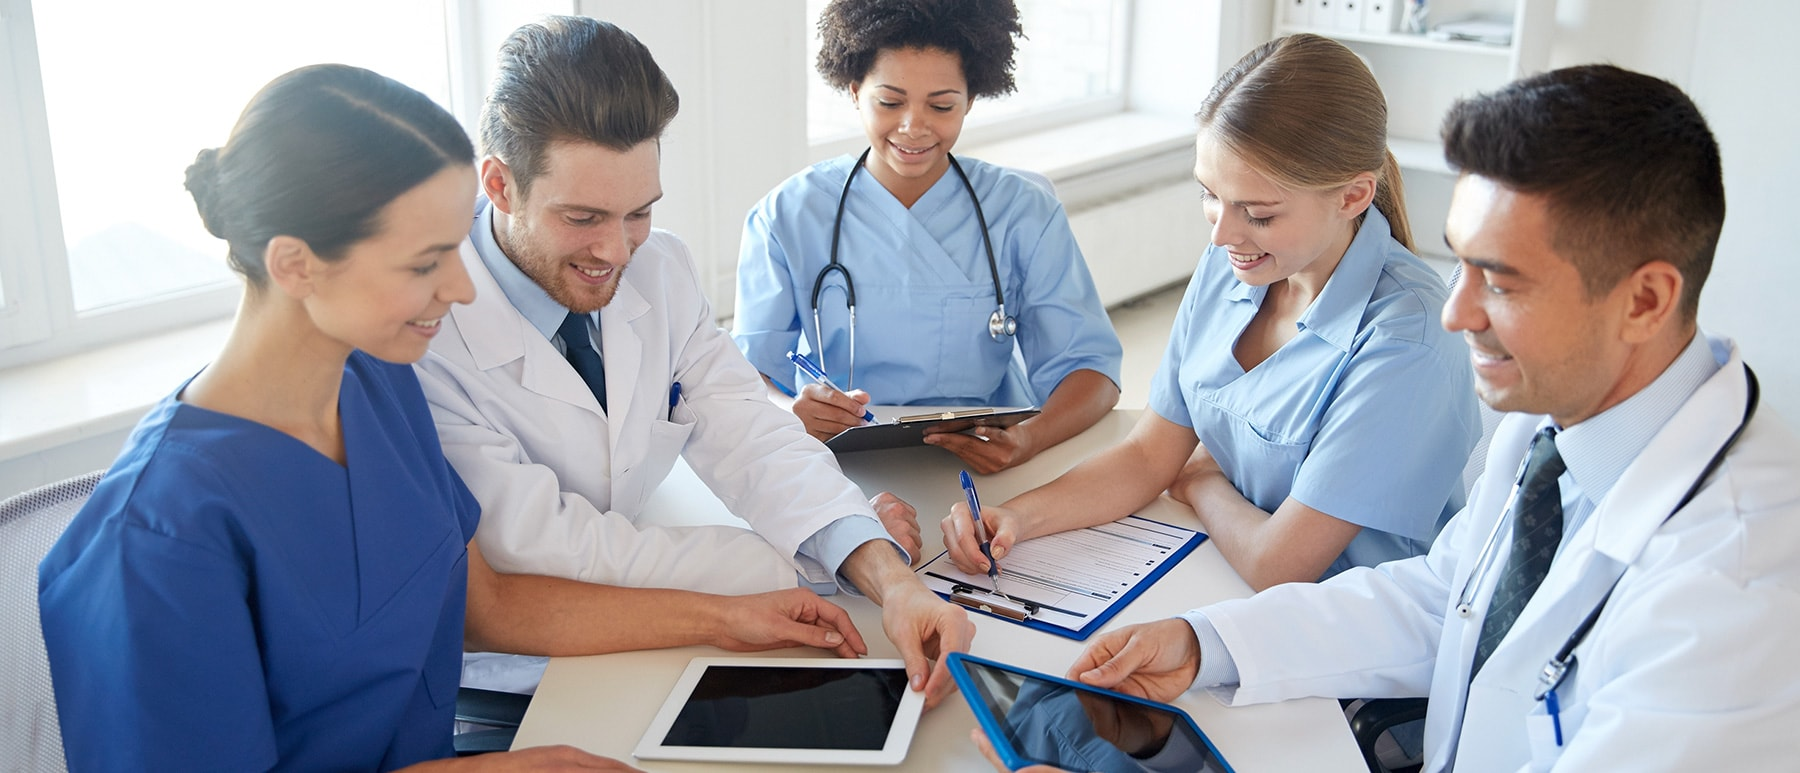 interprofessional collaboration in health care Abstract interprofessional collaboration (ipc) is a driving force behind state-of-the art health care delivery health care experts, governmental bodies, health professions organizations.